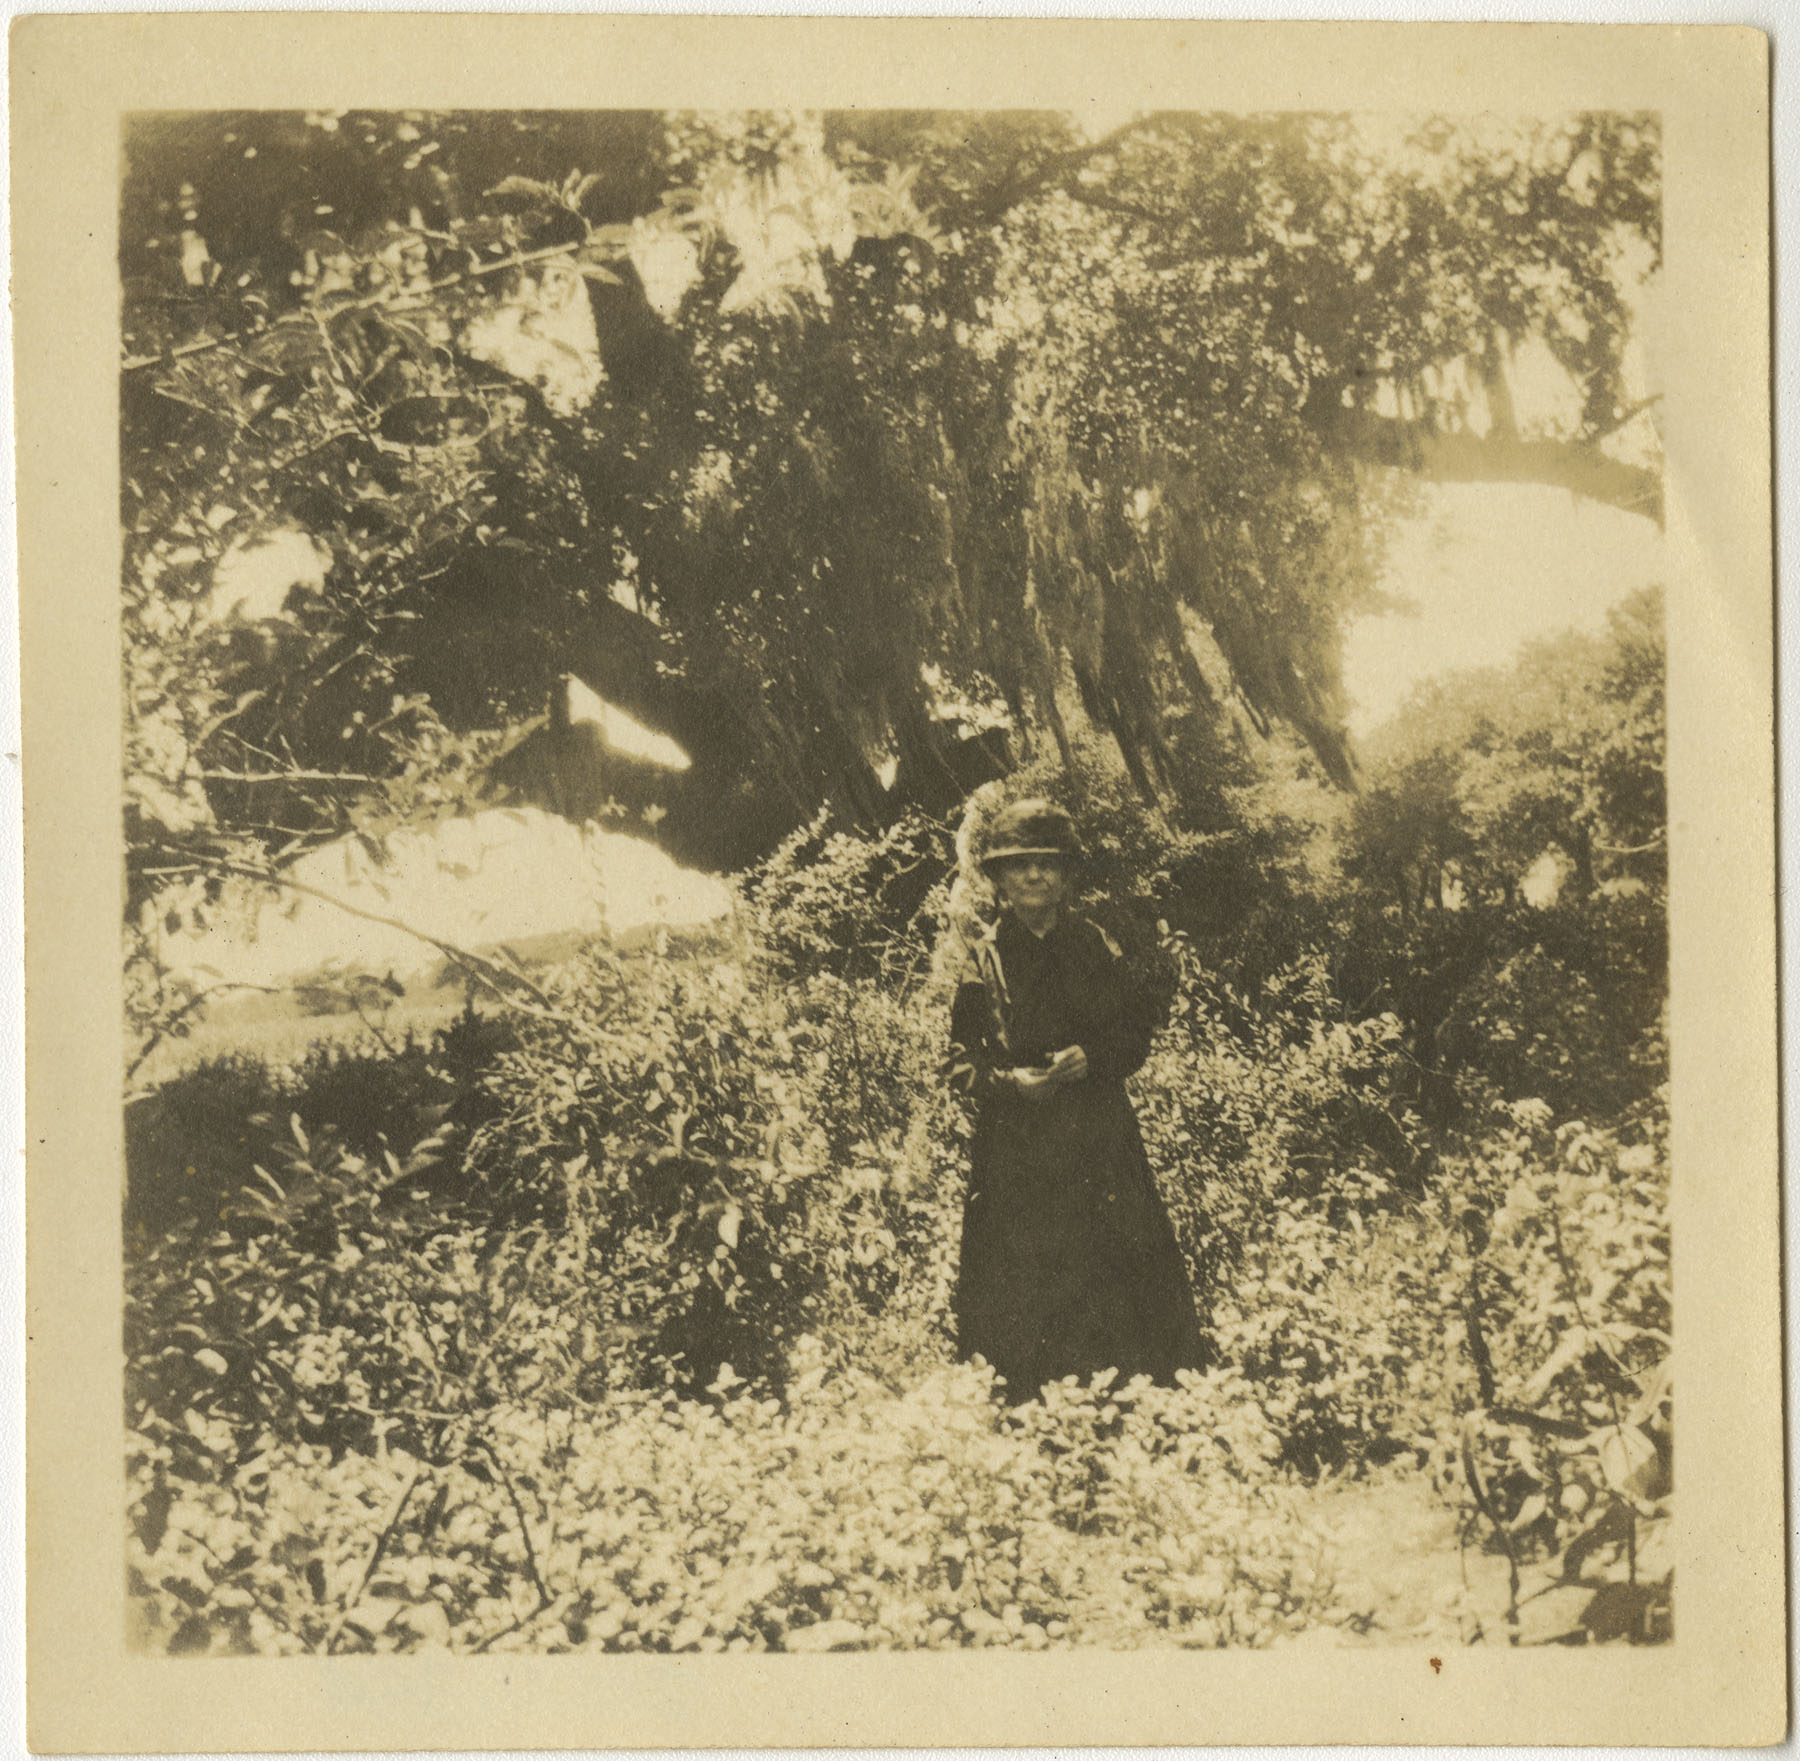 Woman in front of Live Oak tree